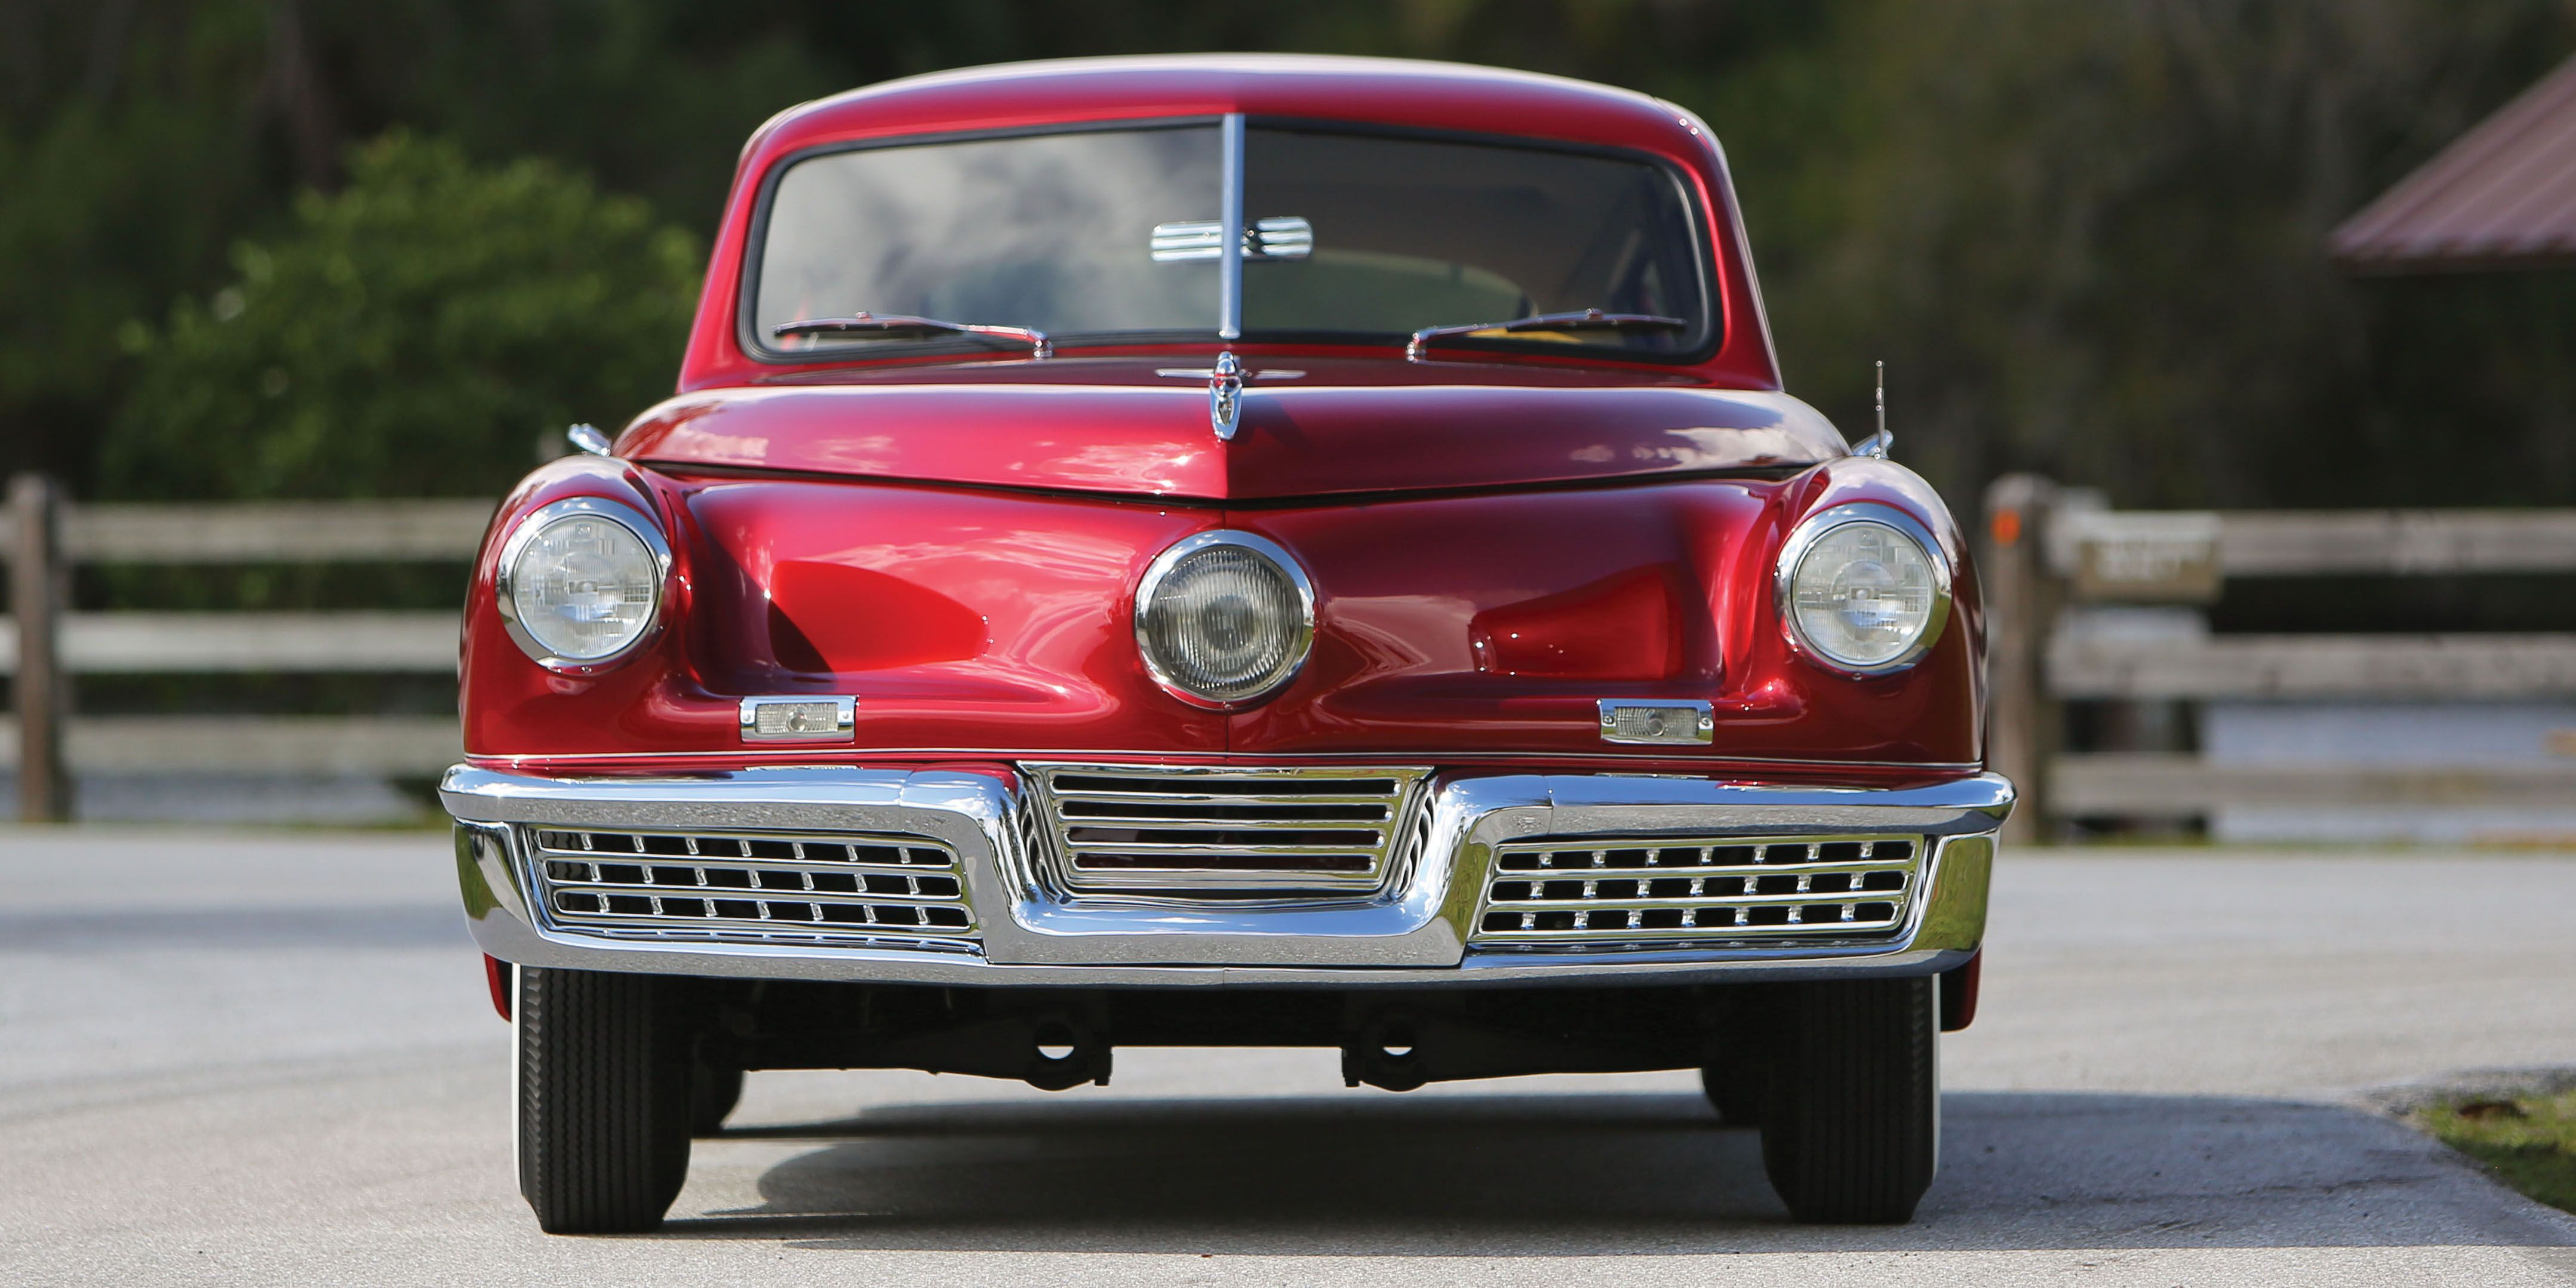 22 Cars With Incredibly Cool Headlight Designs